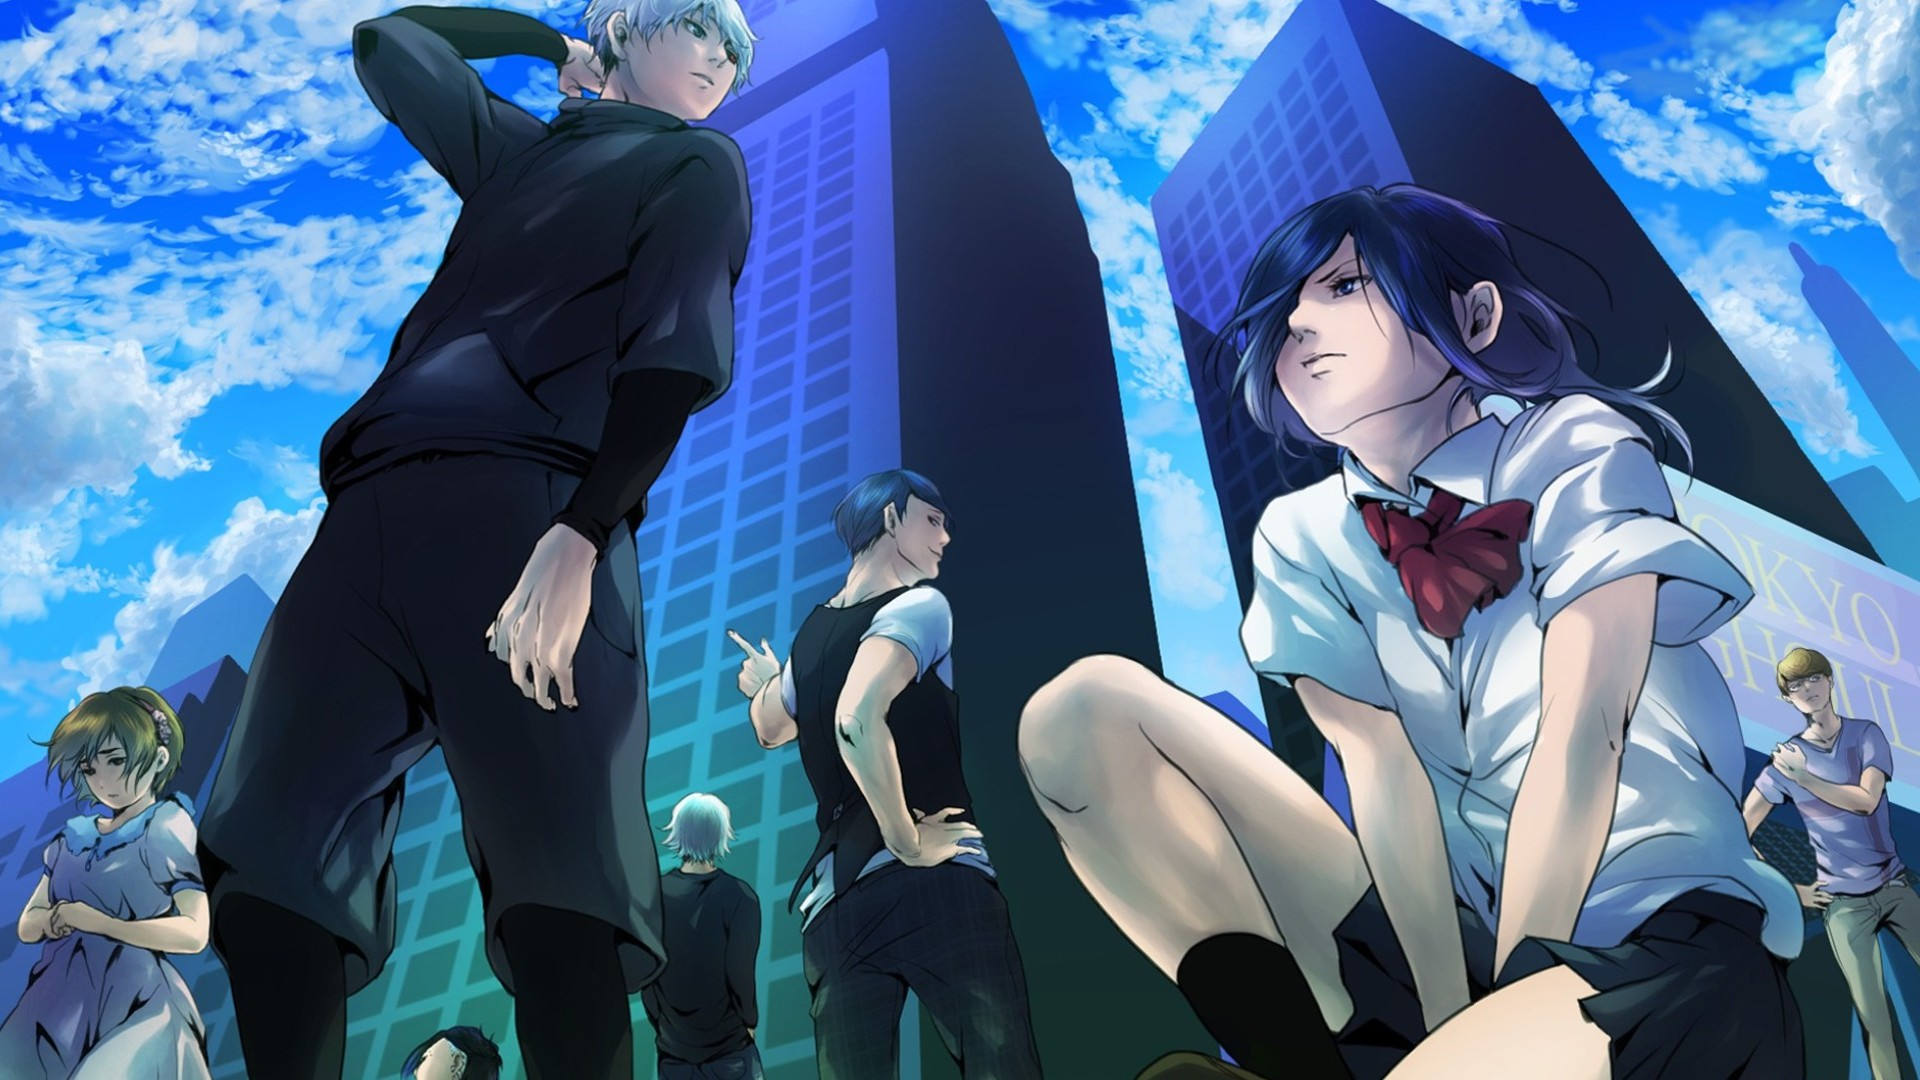 Download Wallpaper From Anime Tokyo Ghoul With Tags Windows